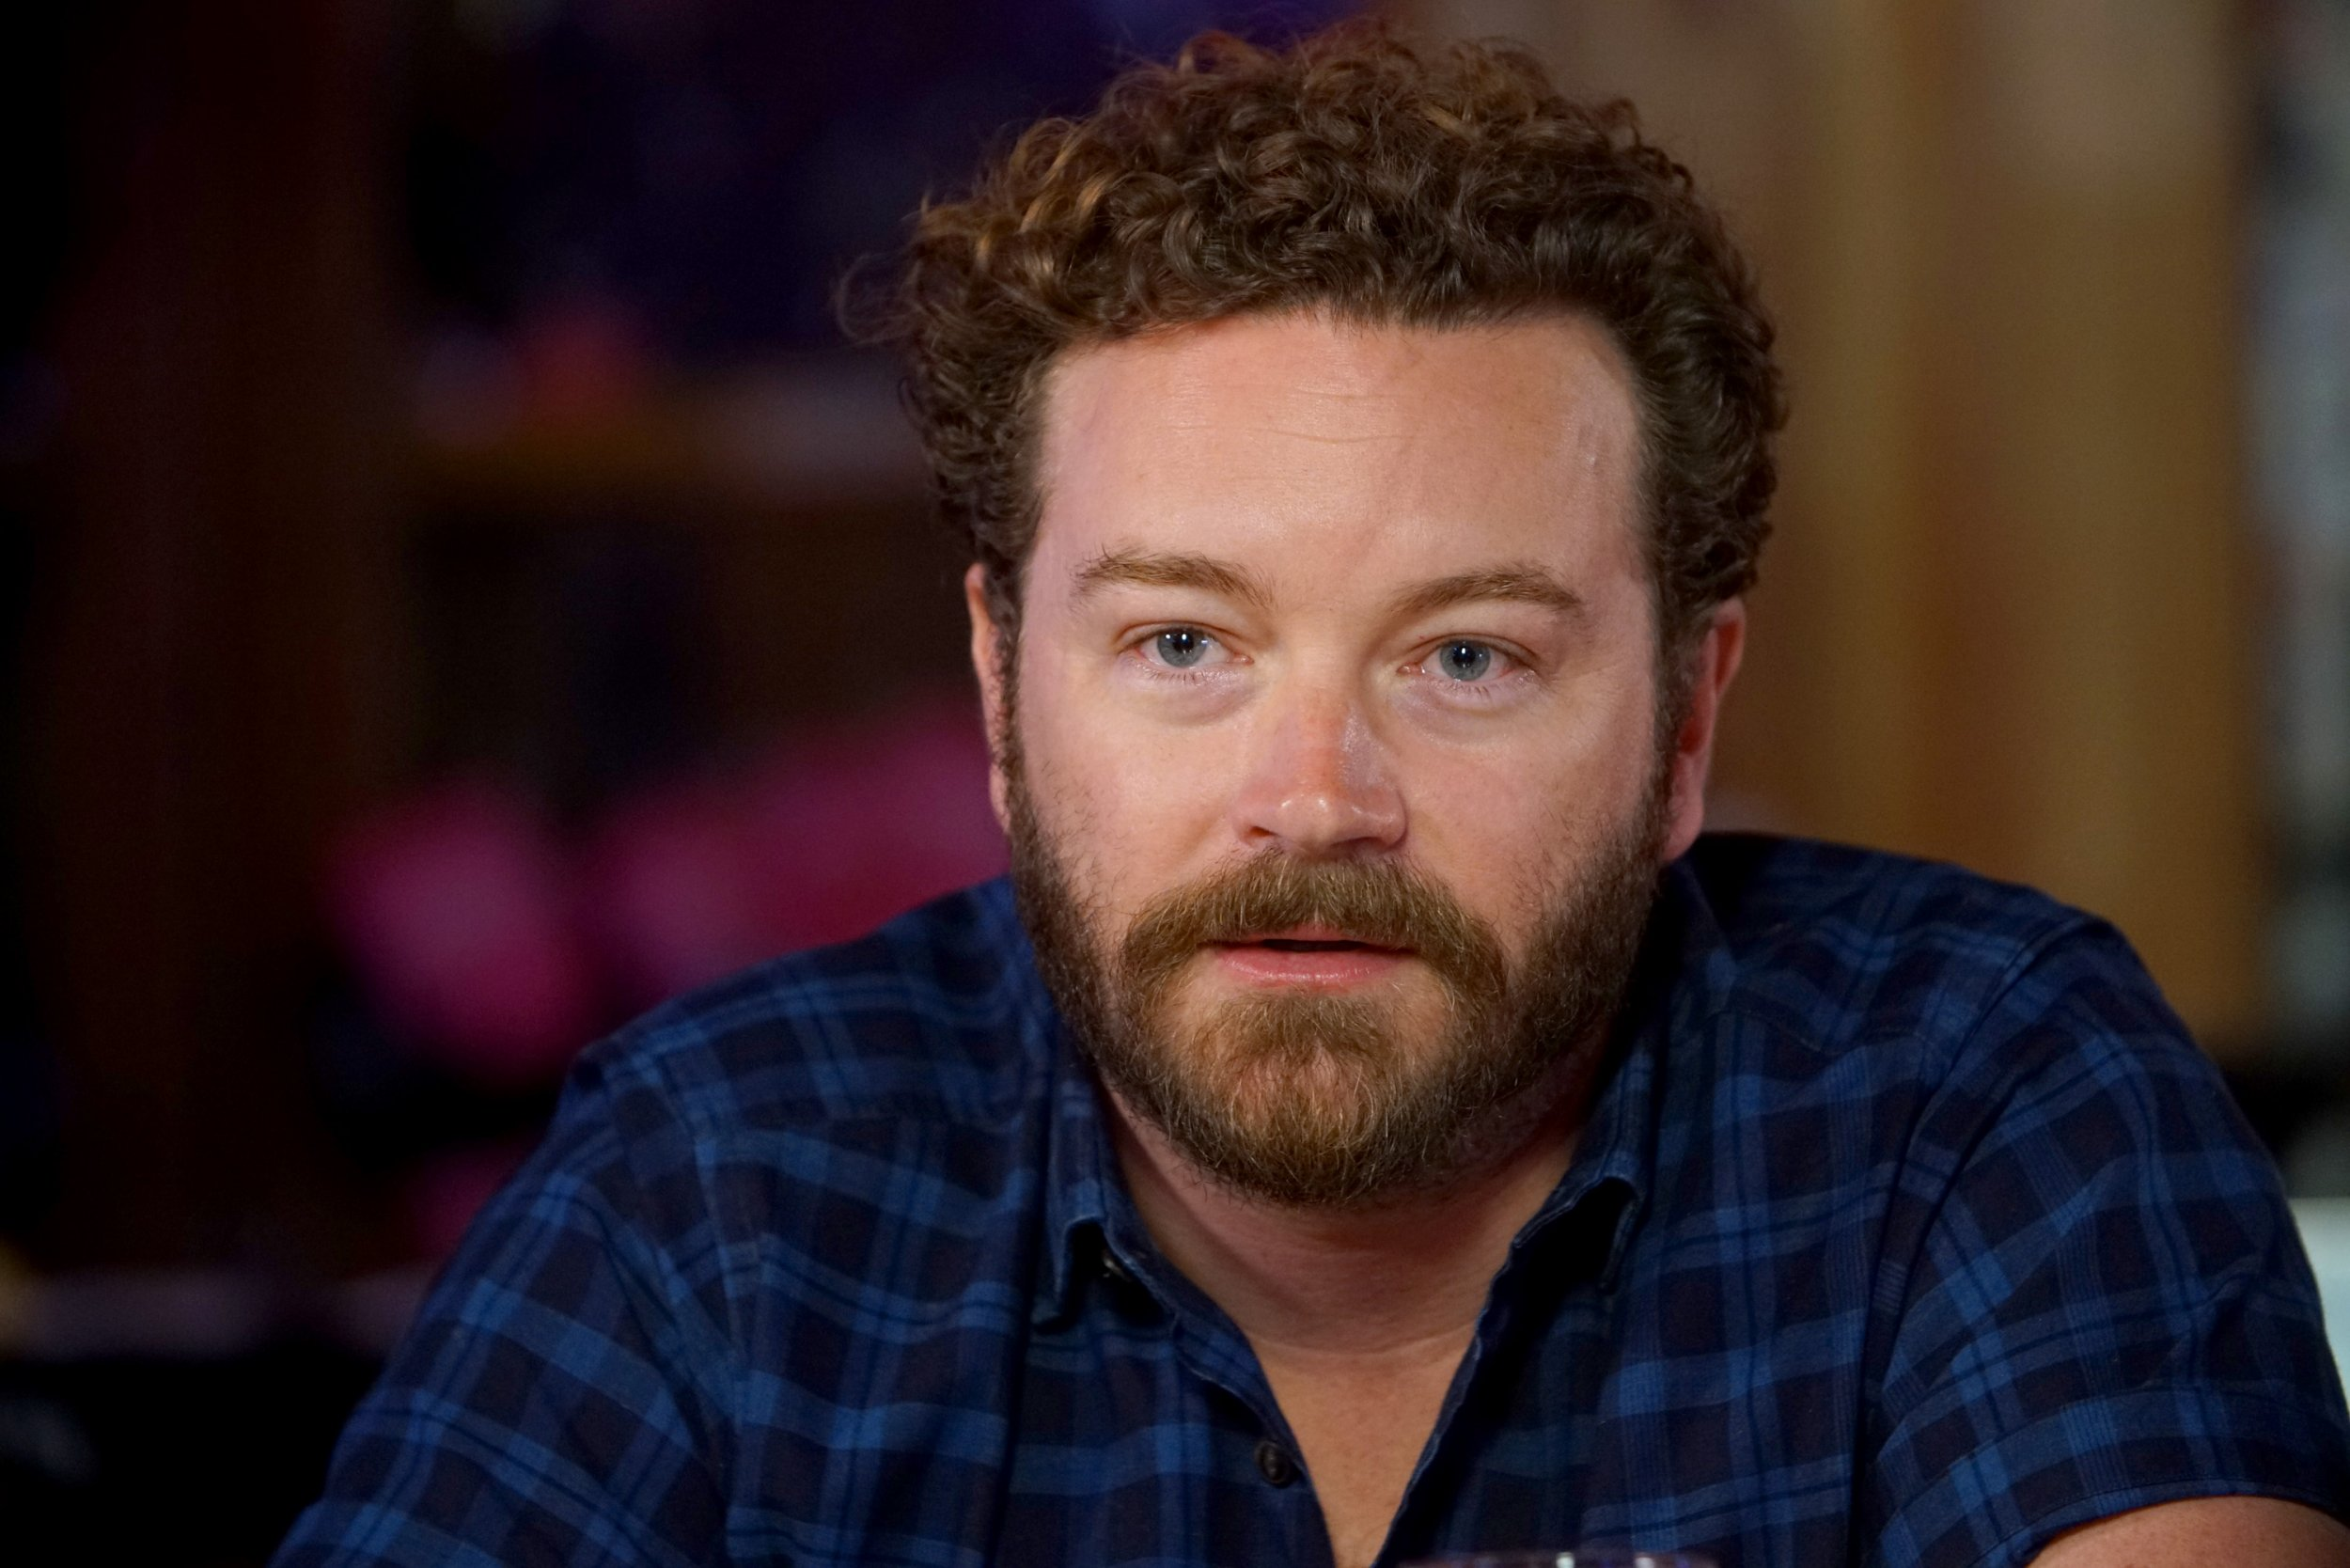 Danny Masterson on 'The Ranch' Part 6